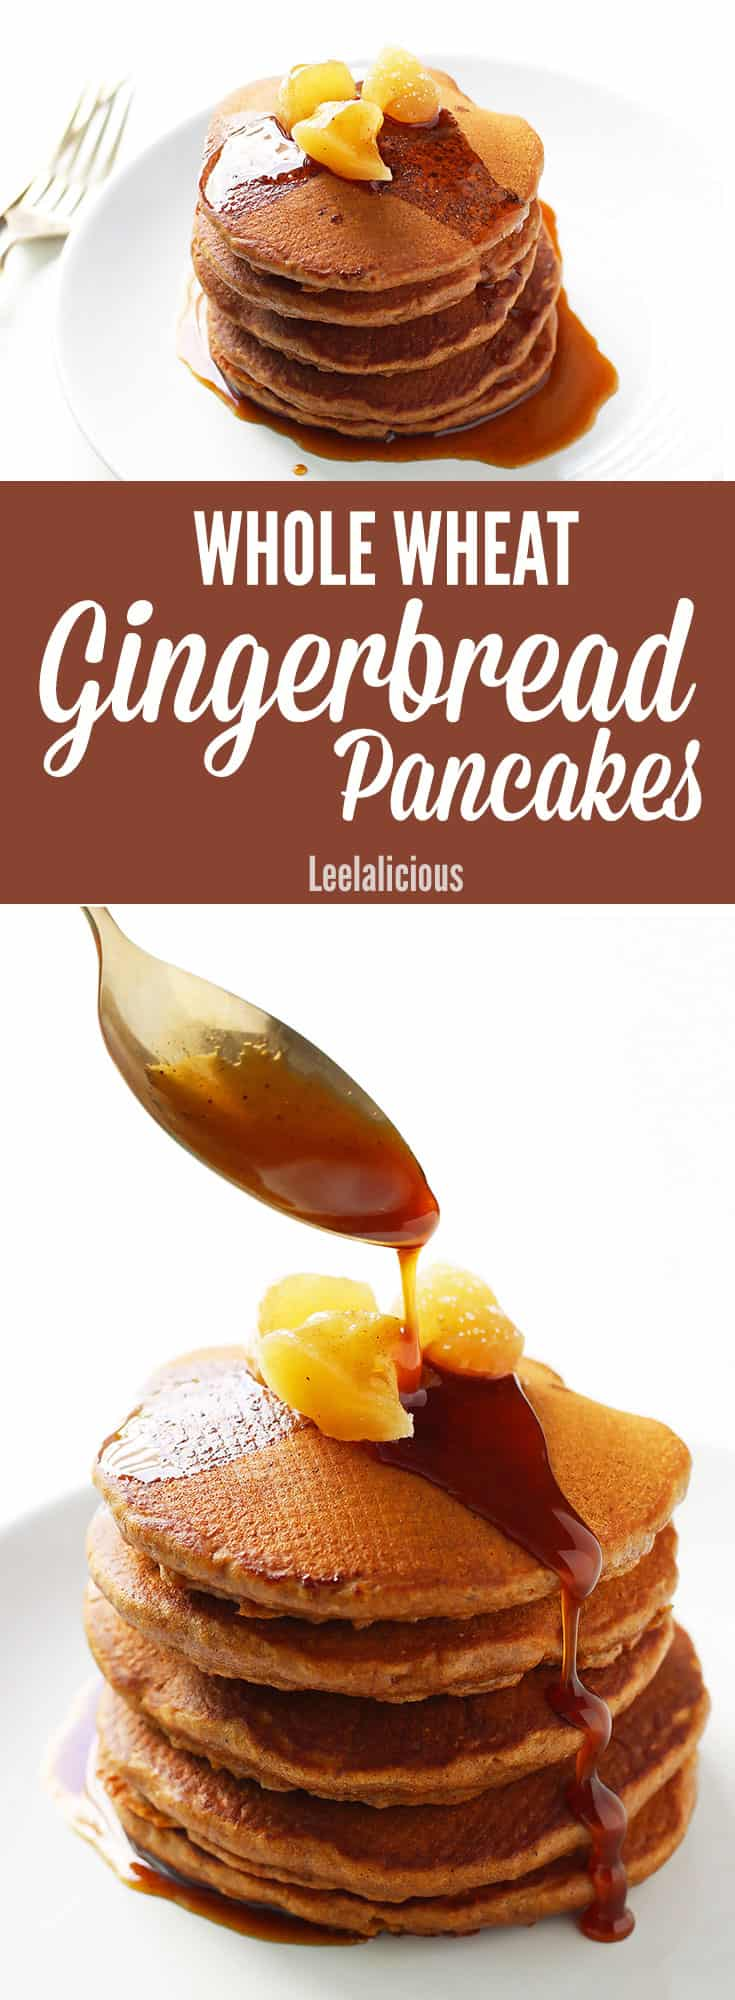 Fluffy Whole Wheat Gingerbread Pancakes with Spiced Molasses Syrup make a delicious and wholesome holiday breakfast treat that is refined sugar free.